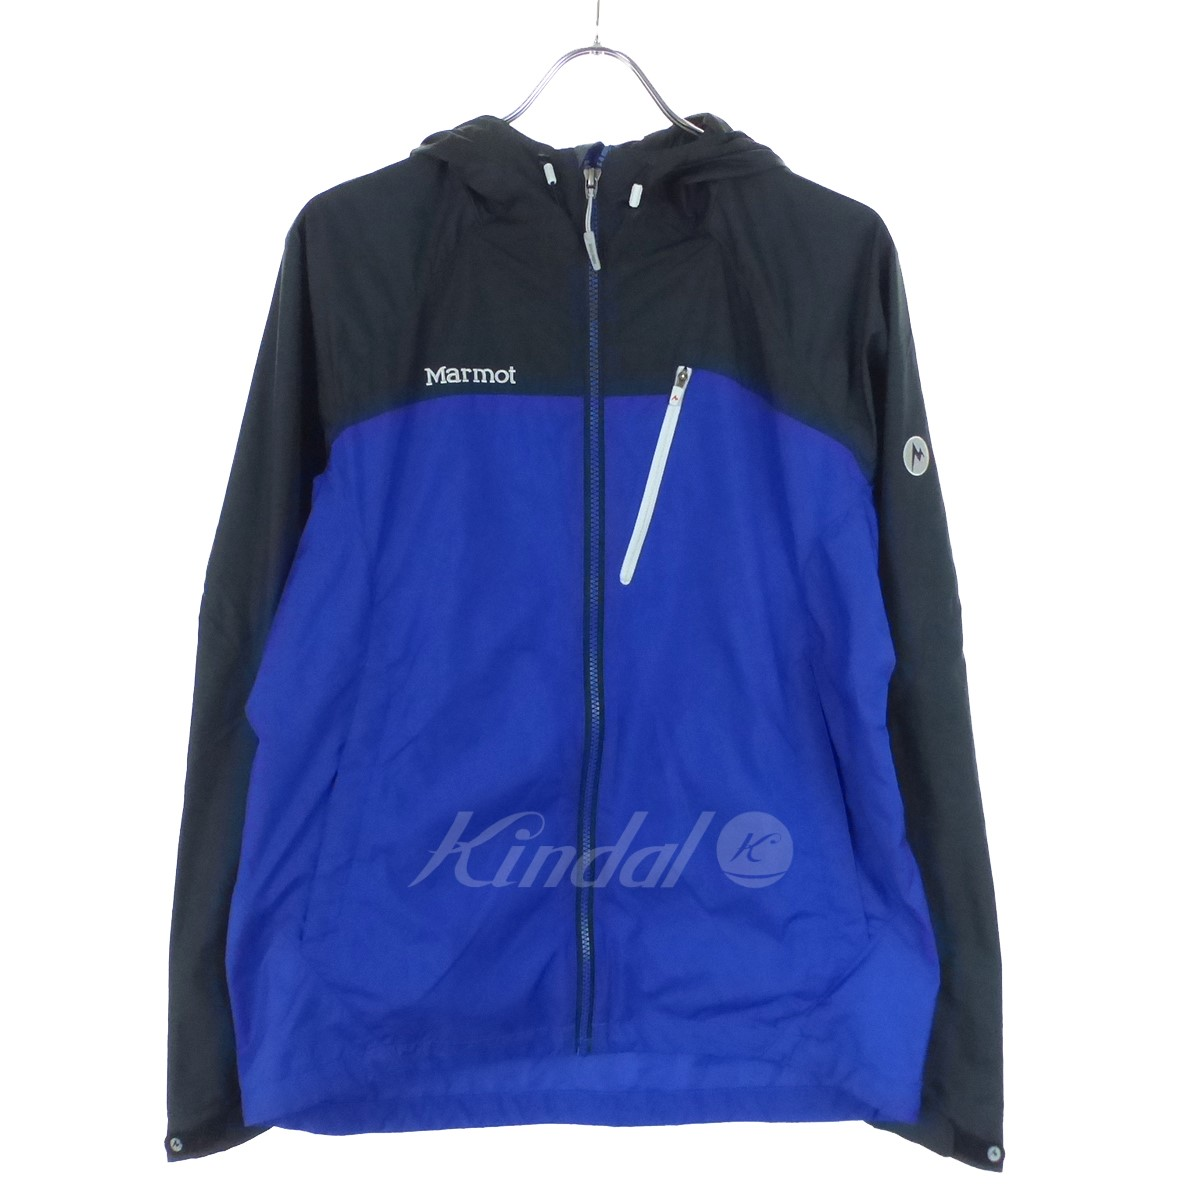 Marmot HEAT NAVI SHELL JACKET running jacket MJJ-F1003 blue X black size:  large